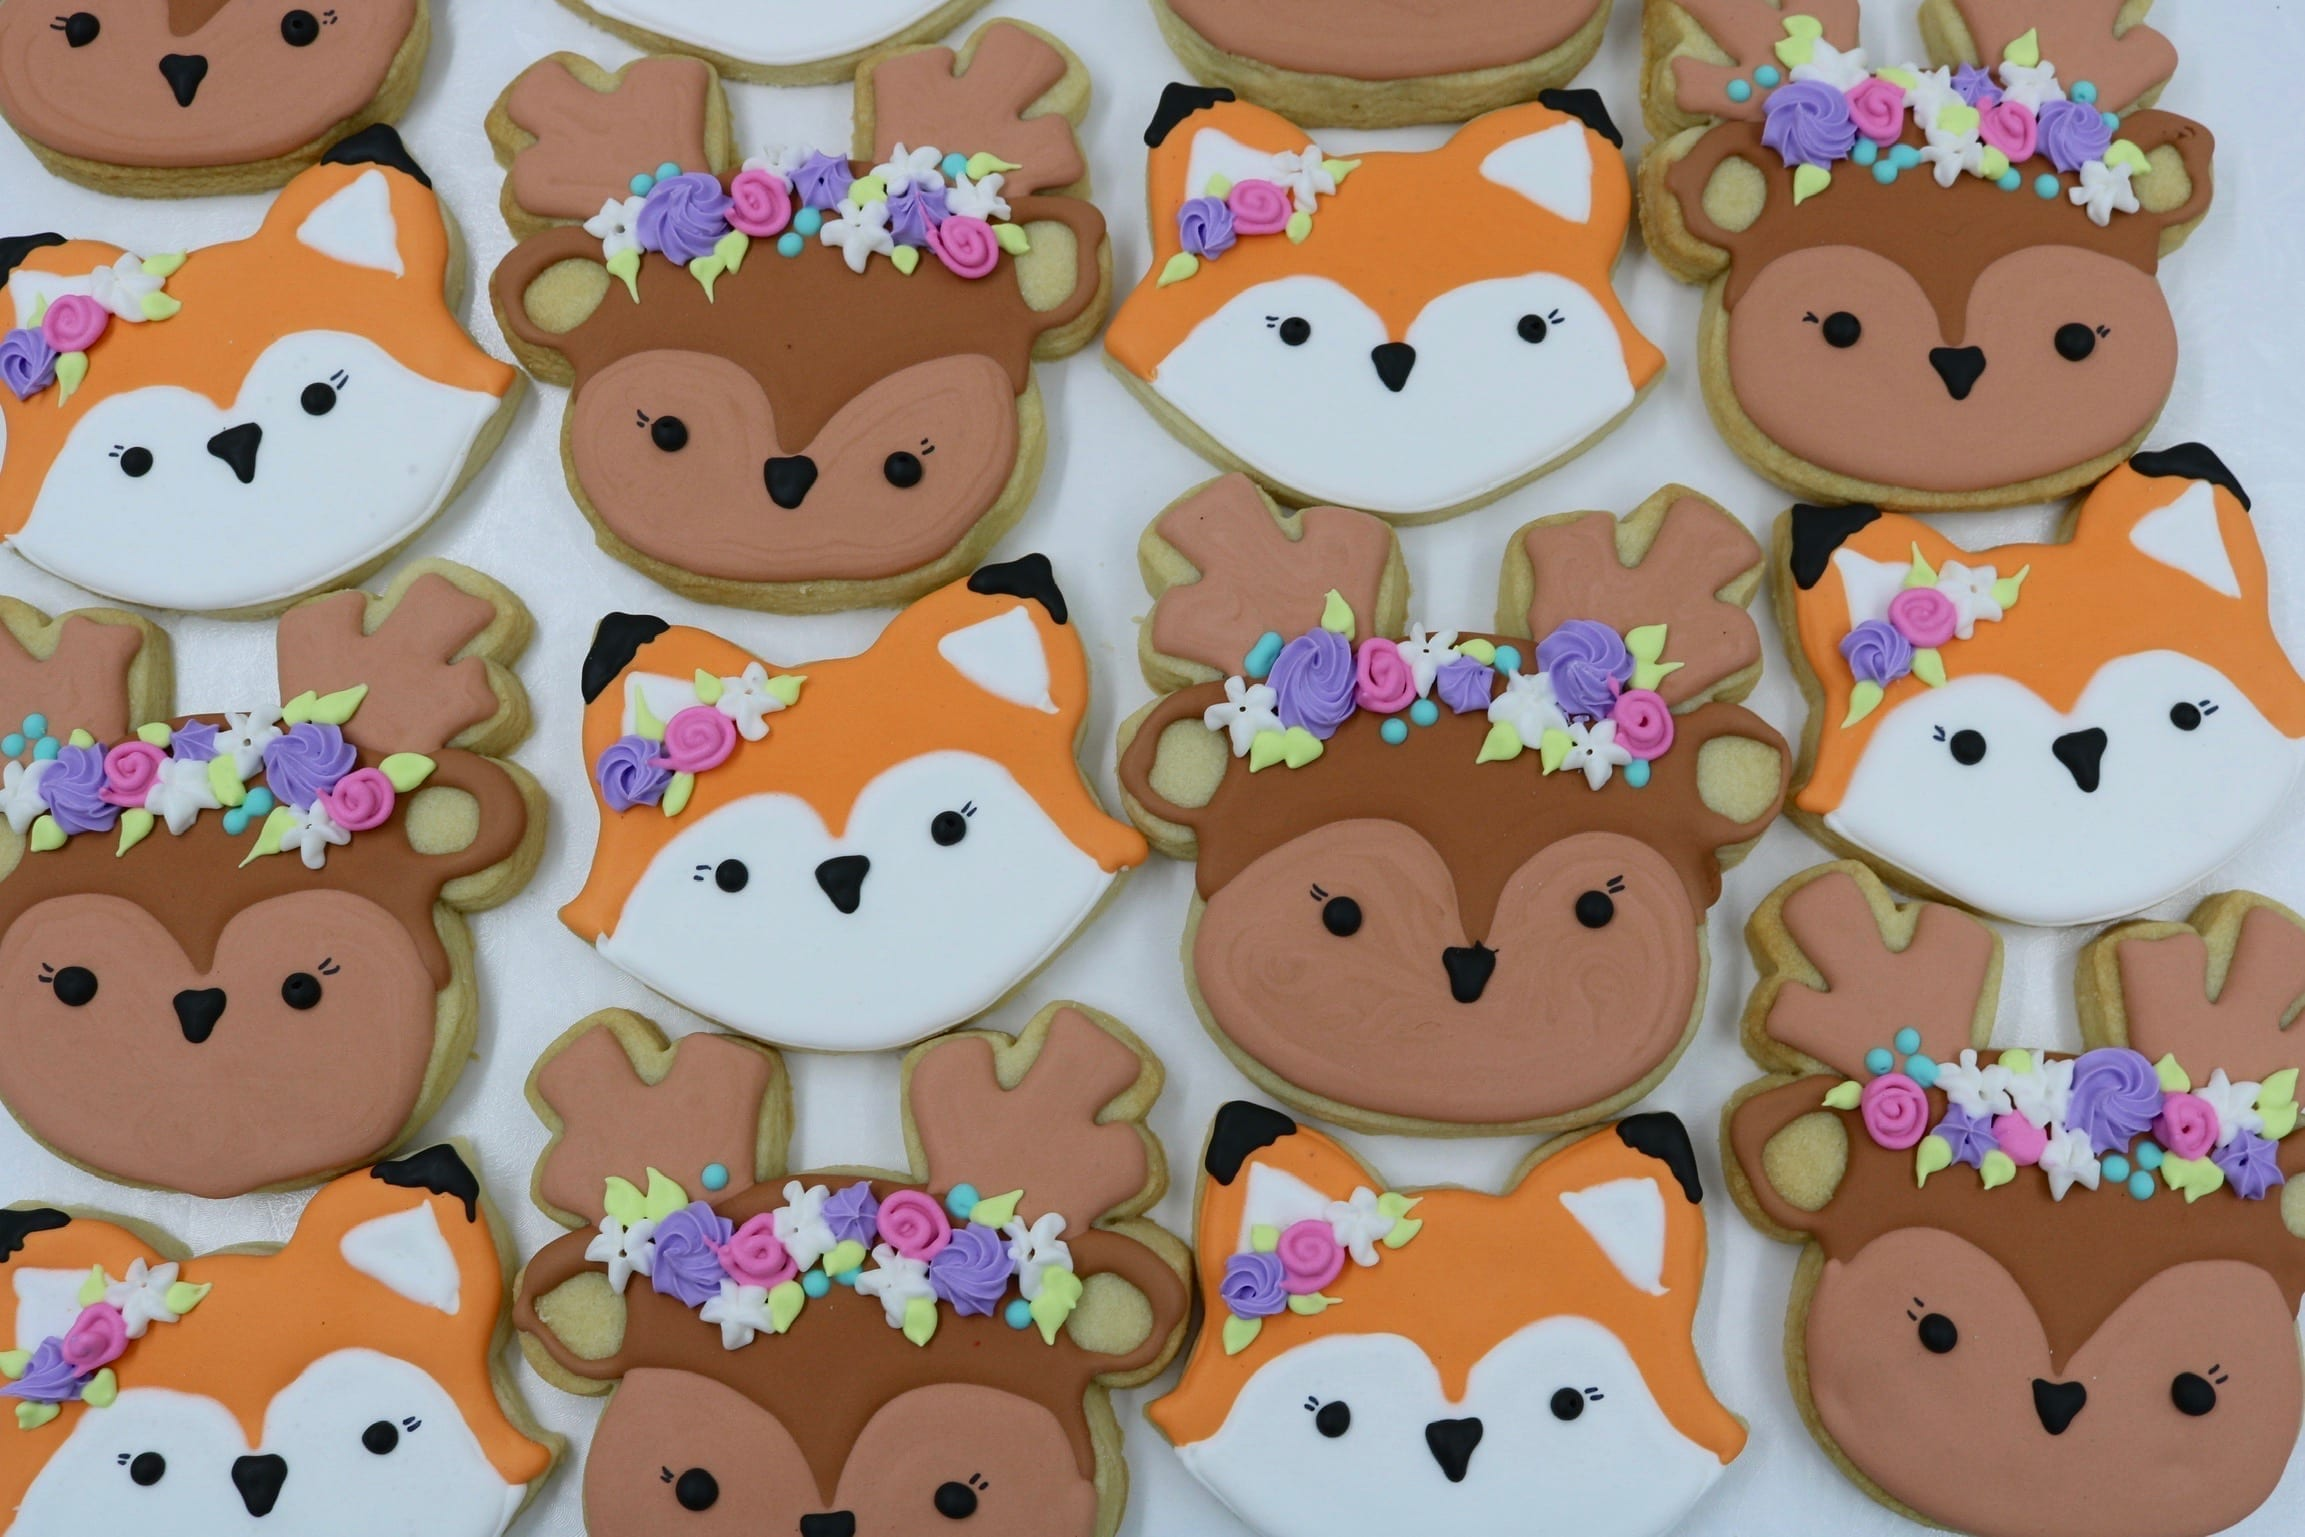 Woodland Animal Cookies with Flower Garlands | 3 Sweet Girls Cakery